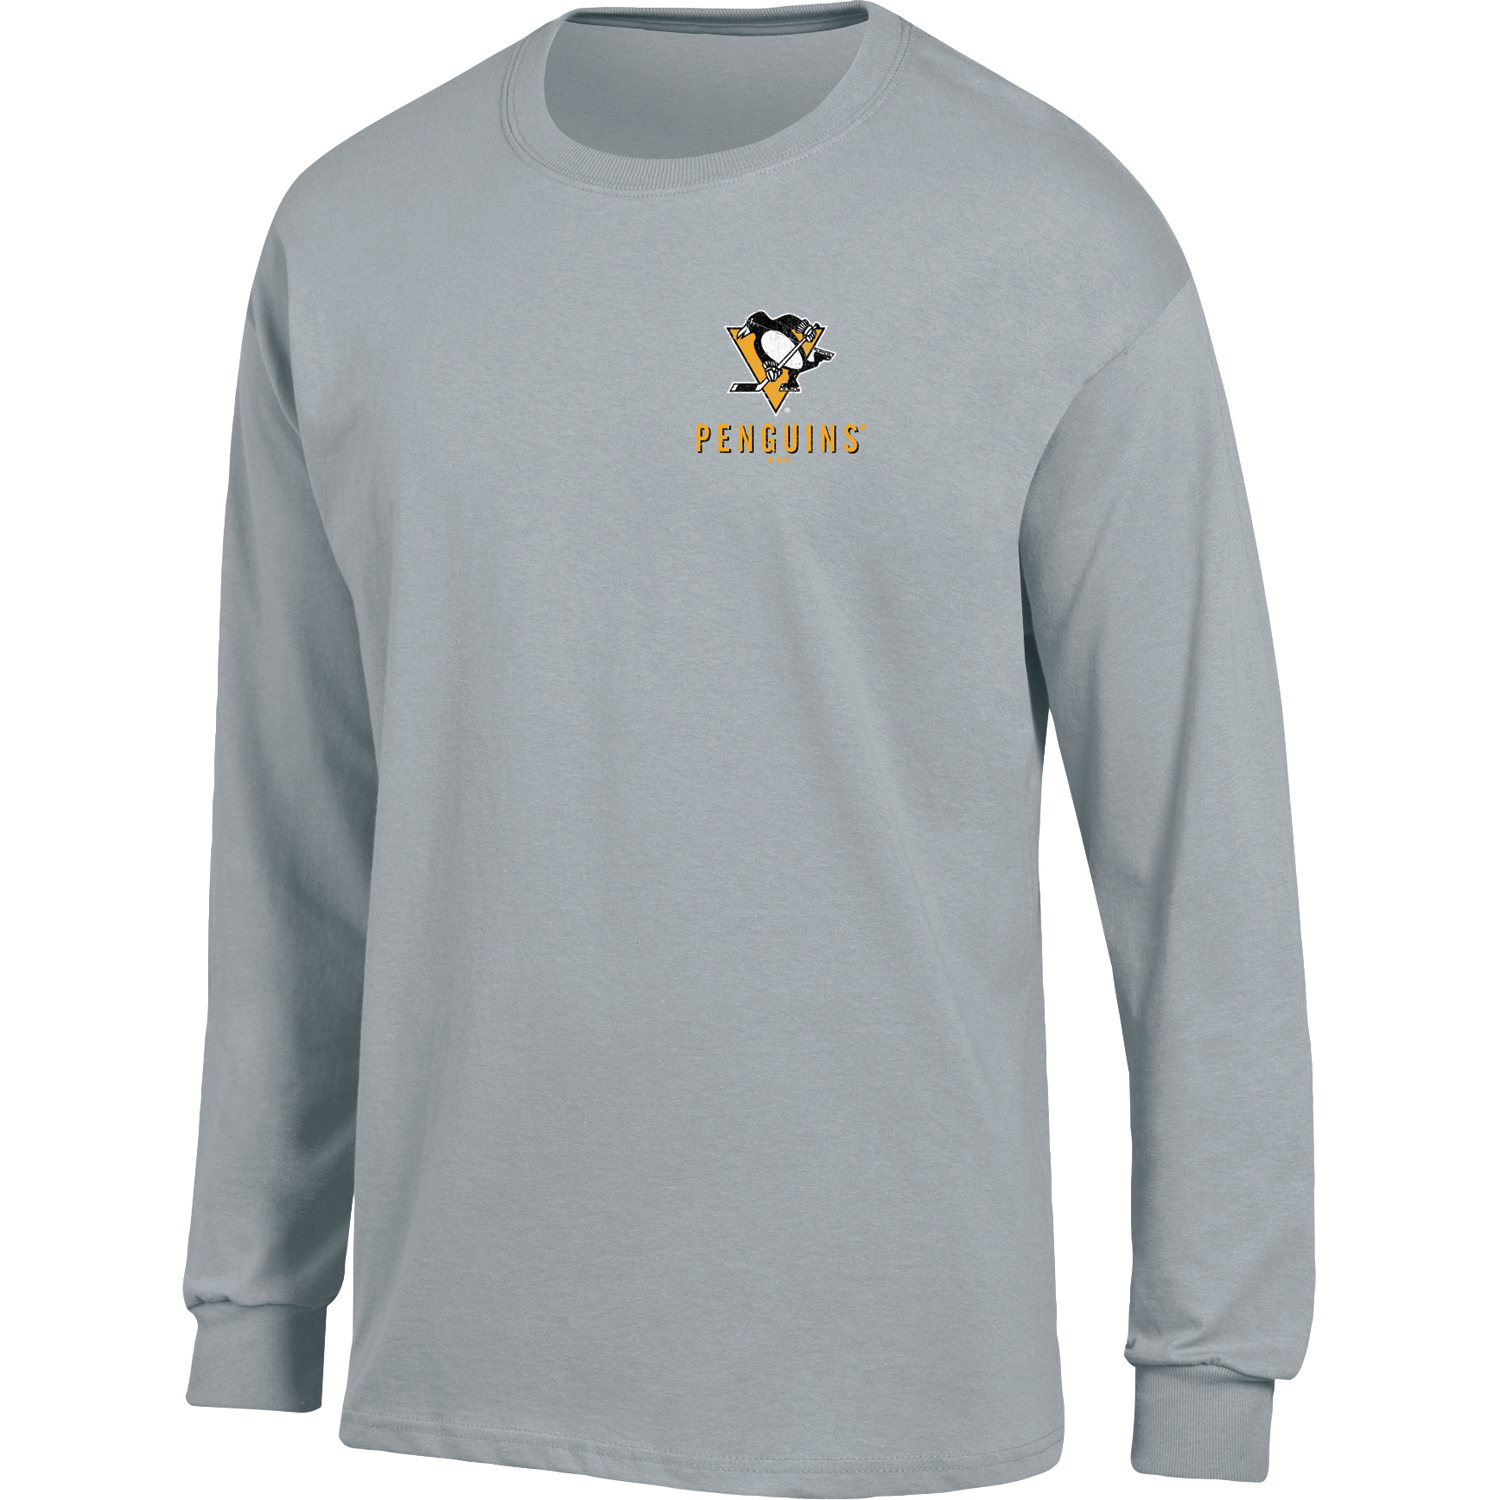 Men's Heathered Gray Pittsburgh Penguins Back Hit Long Sleeve T-Shirt